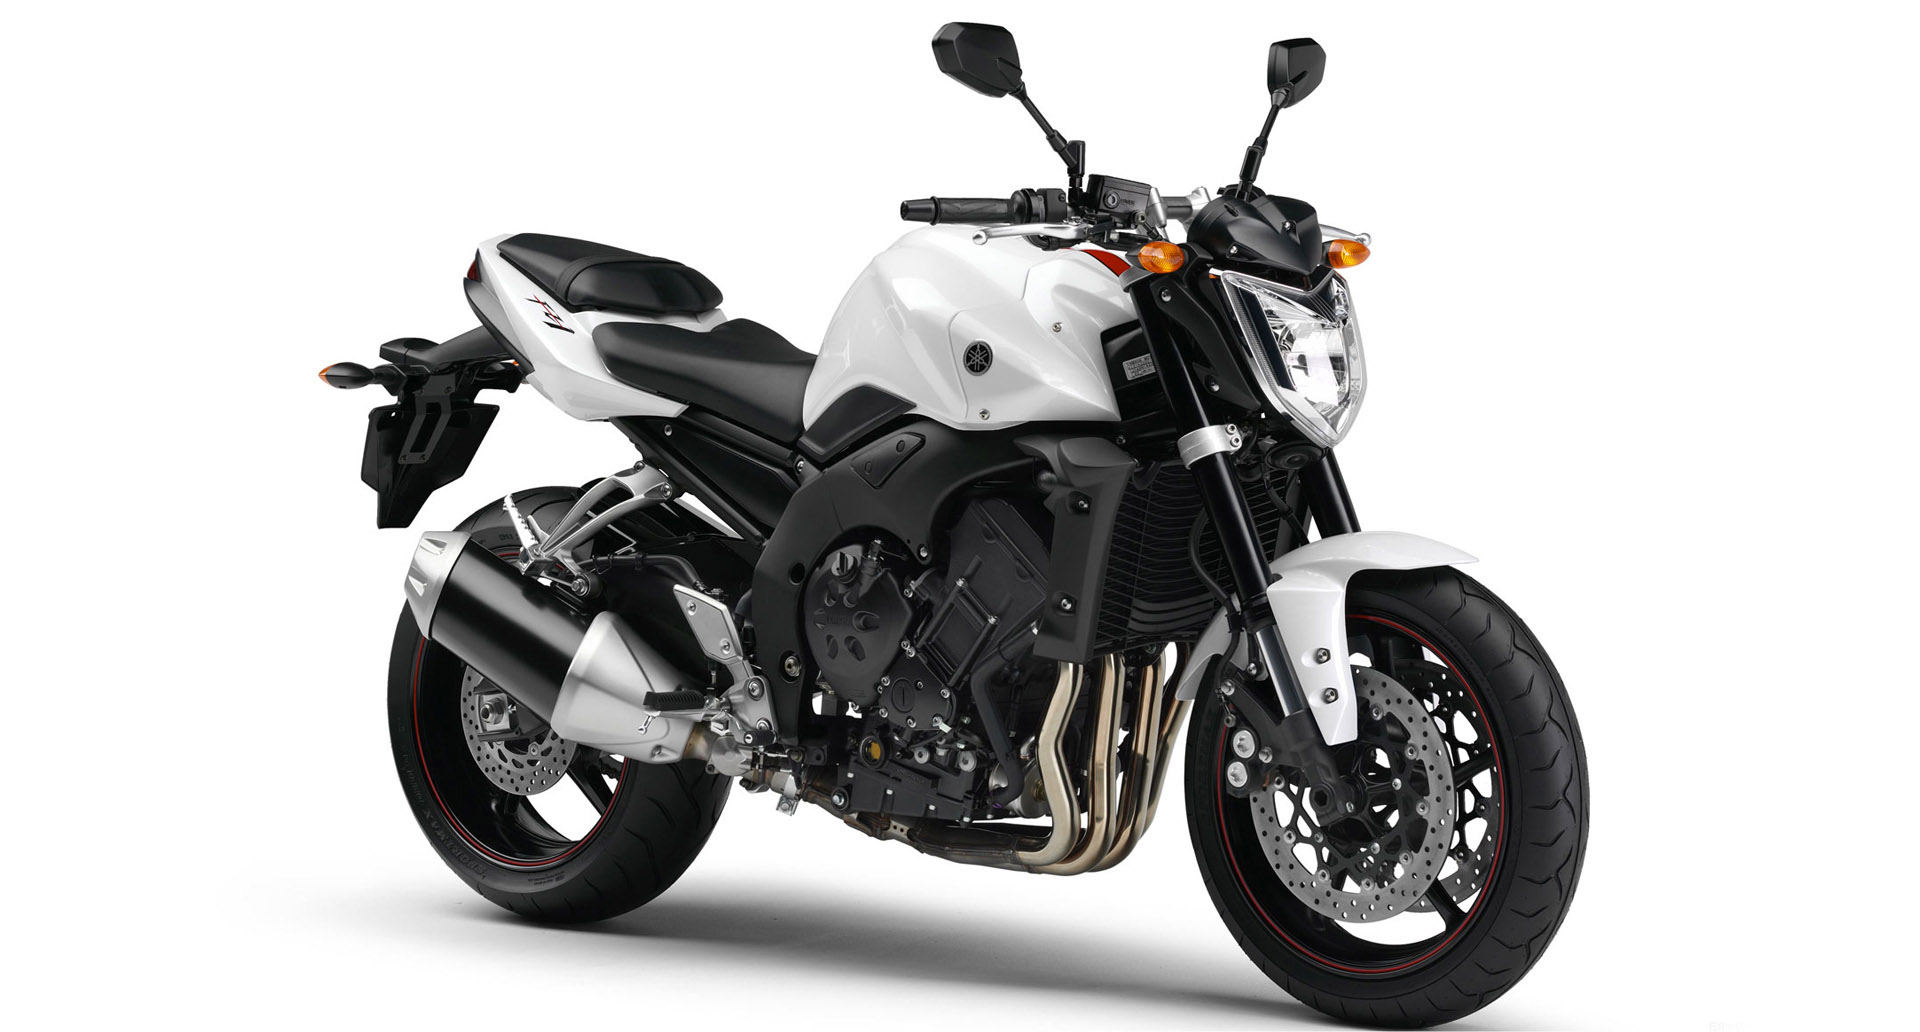 Yamaha fz1 photo - 10